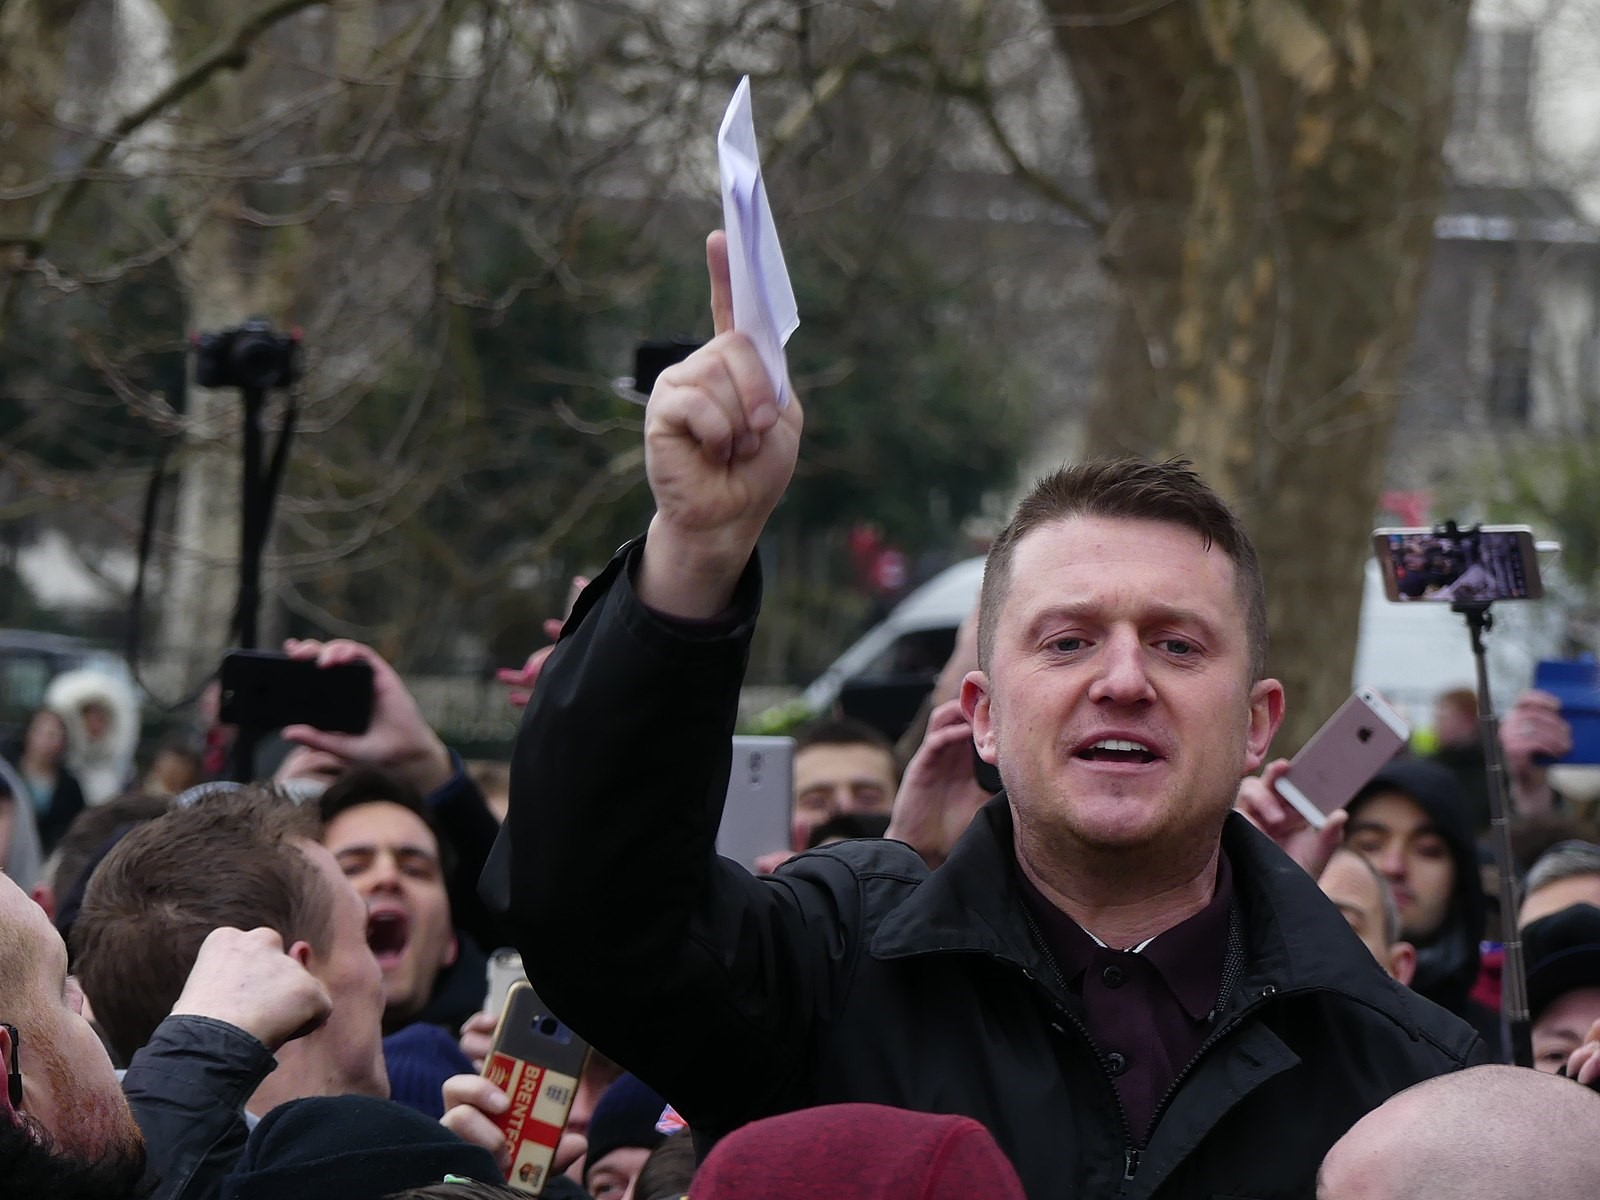 A picture of right-wing activist and politician Tommy Robinsonstanding amongst a crowd of people, many of whom are using their phones to film/take pictures of him